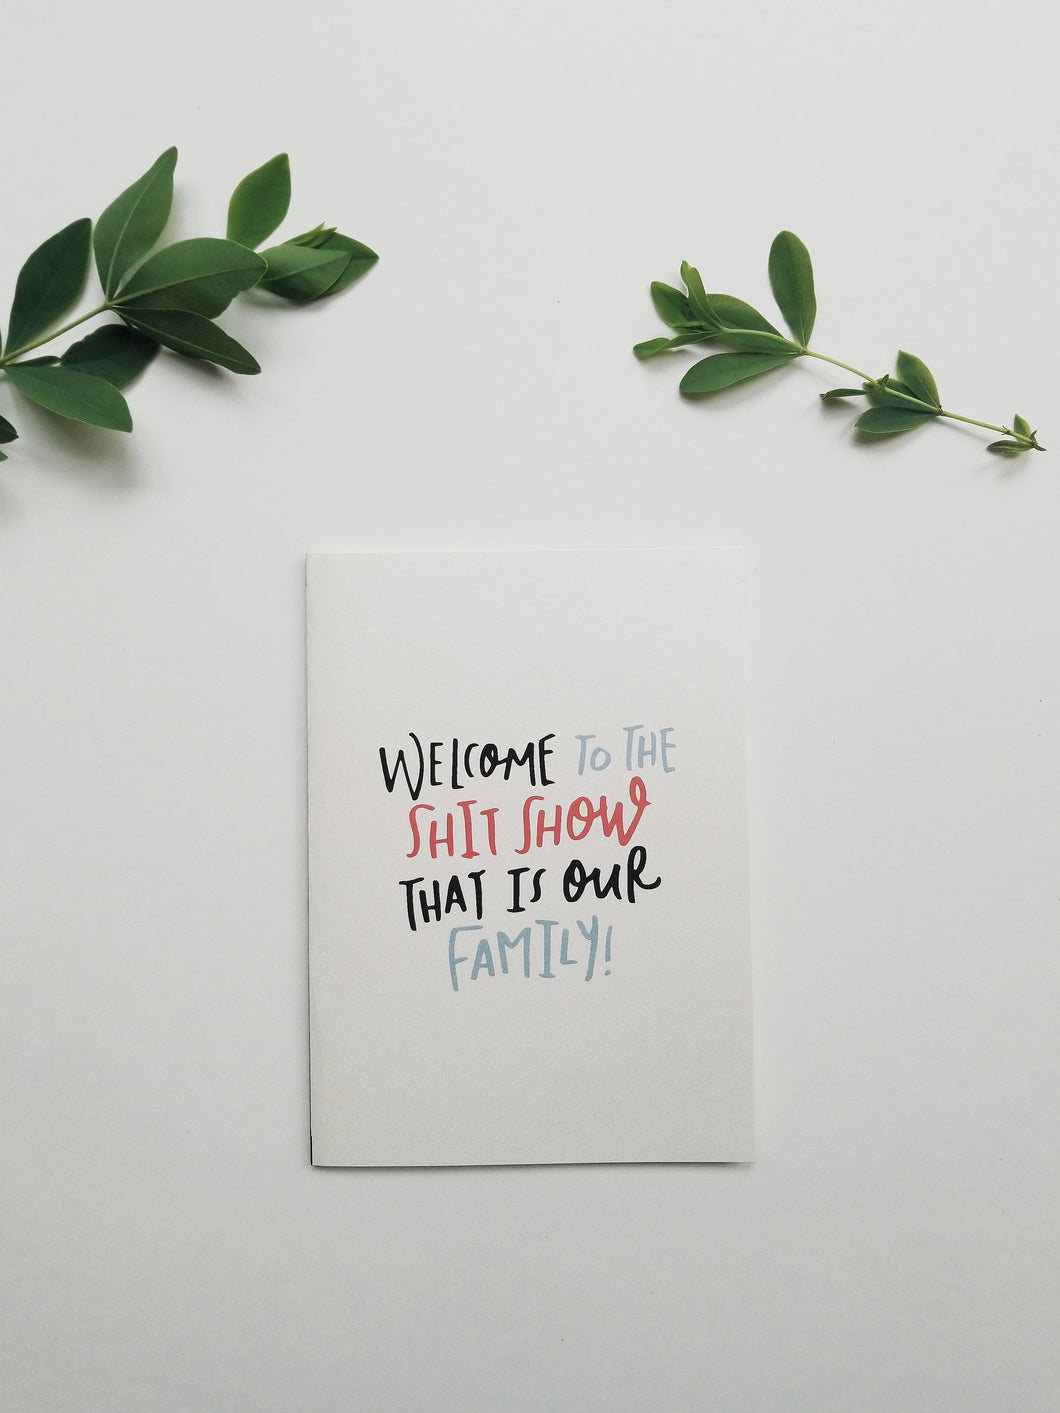 Welcome to the family funny greeting card